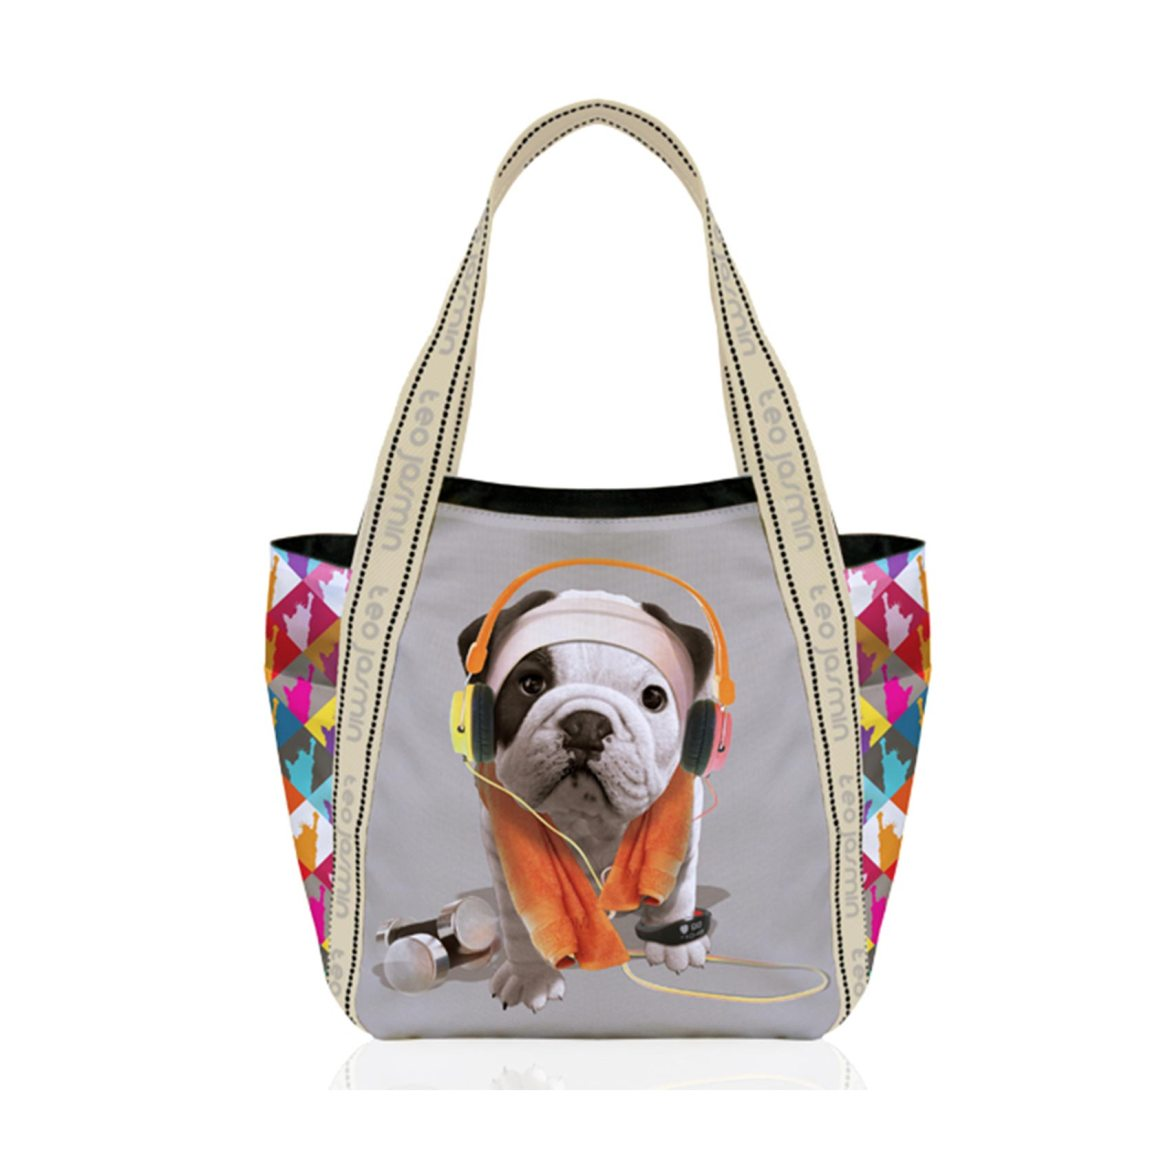 sac-a-main-chien-teo-jasmin-fitness-gris